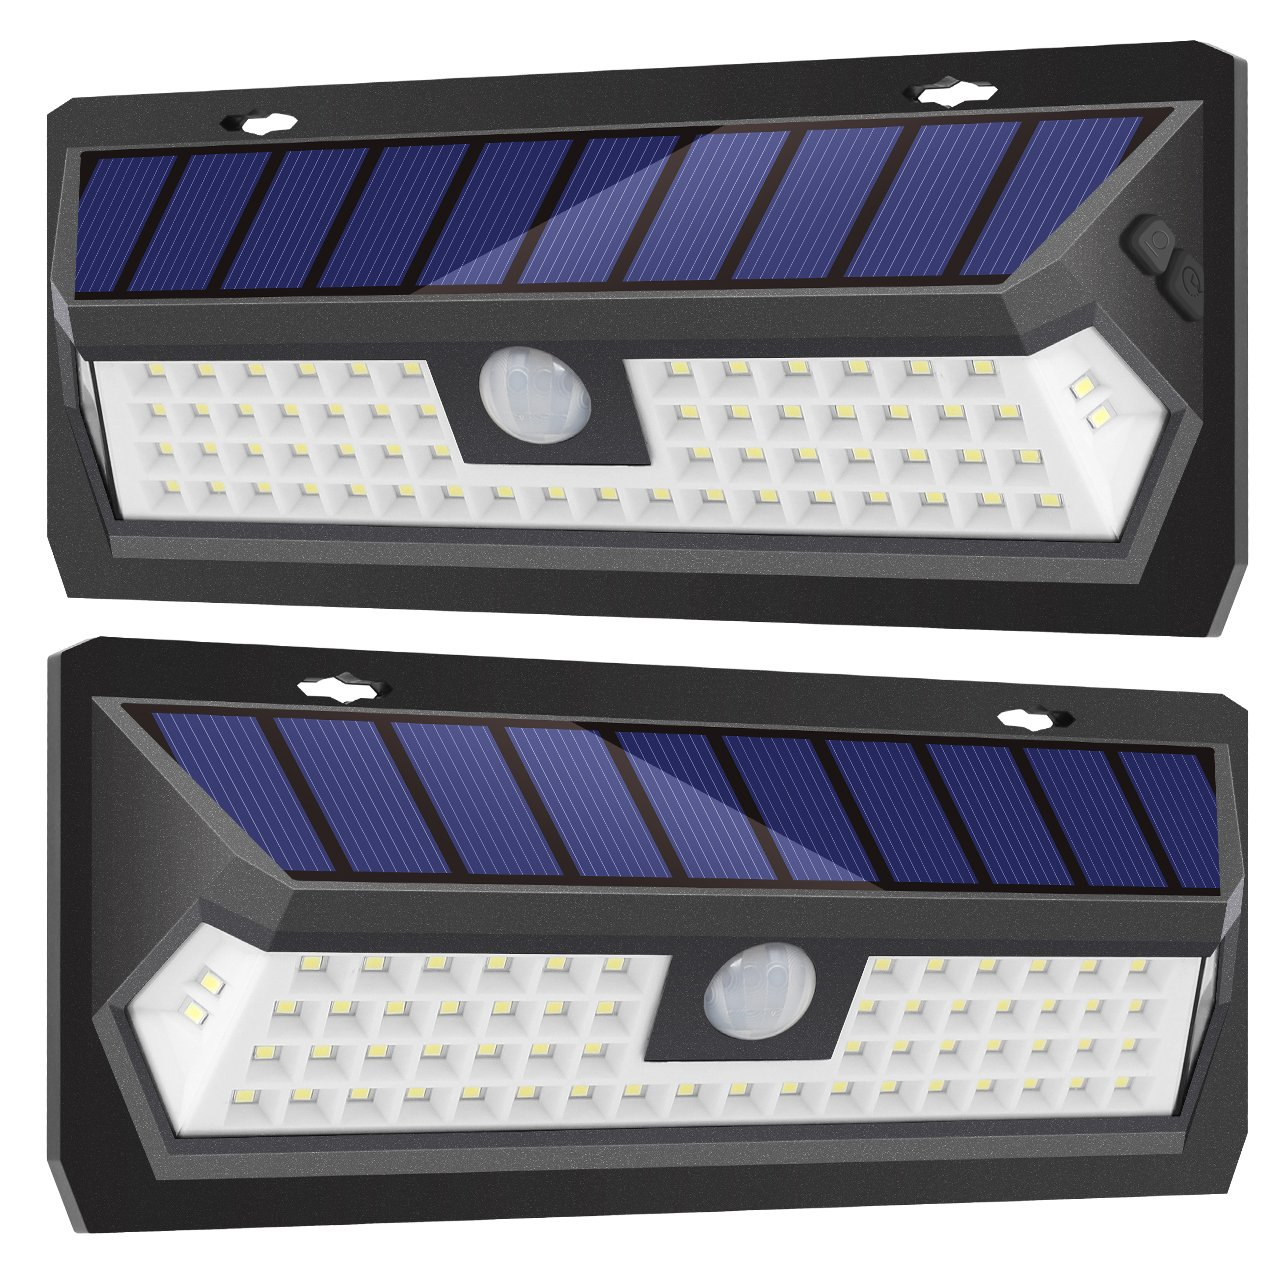 InnoGear Upgraded Solar Lights Outdoor Motion Sensor Wall Light Auto On/Off with 3 Modes Outdoor Waterproof Security Lights Night Light for Wall Fence Deck Yard Garage Driveway, Pack of 2